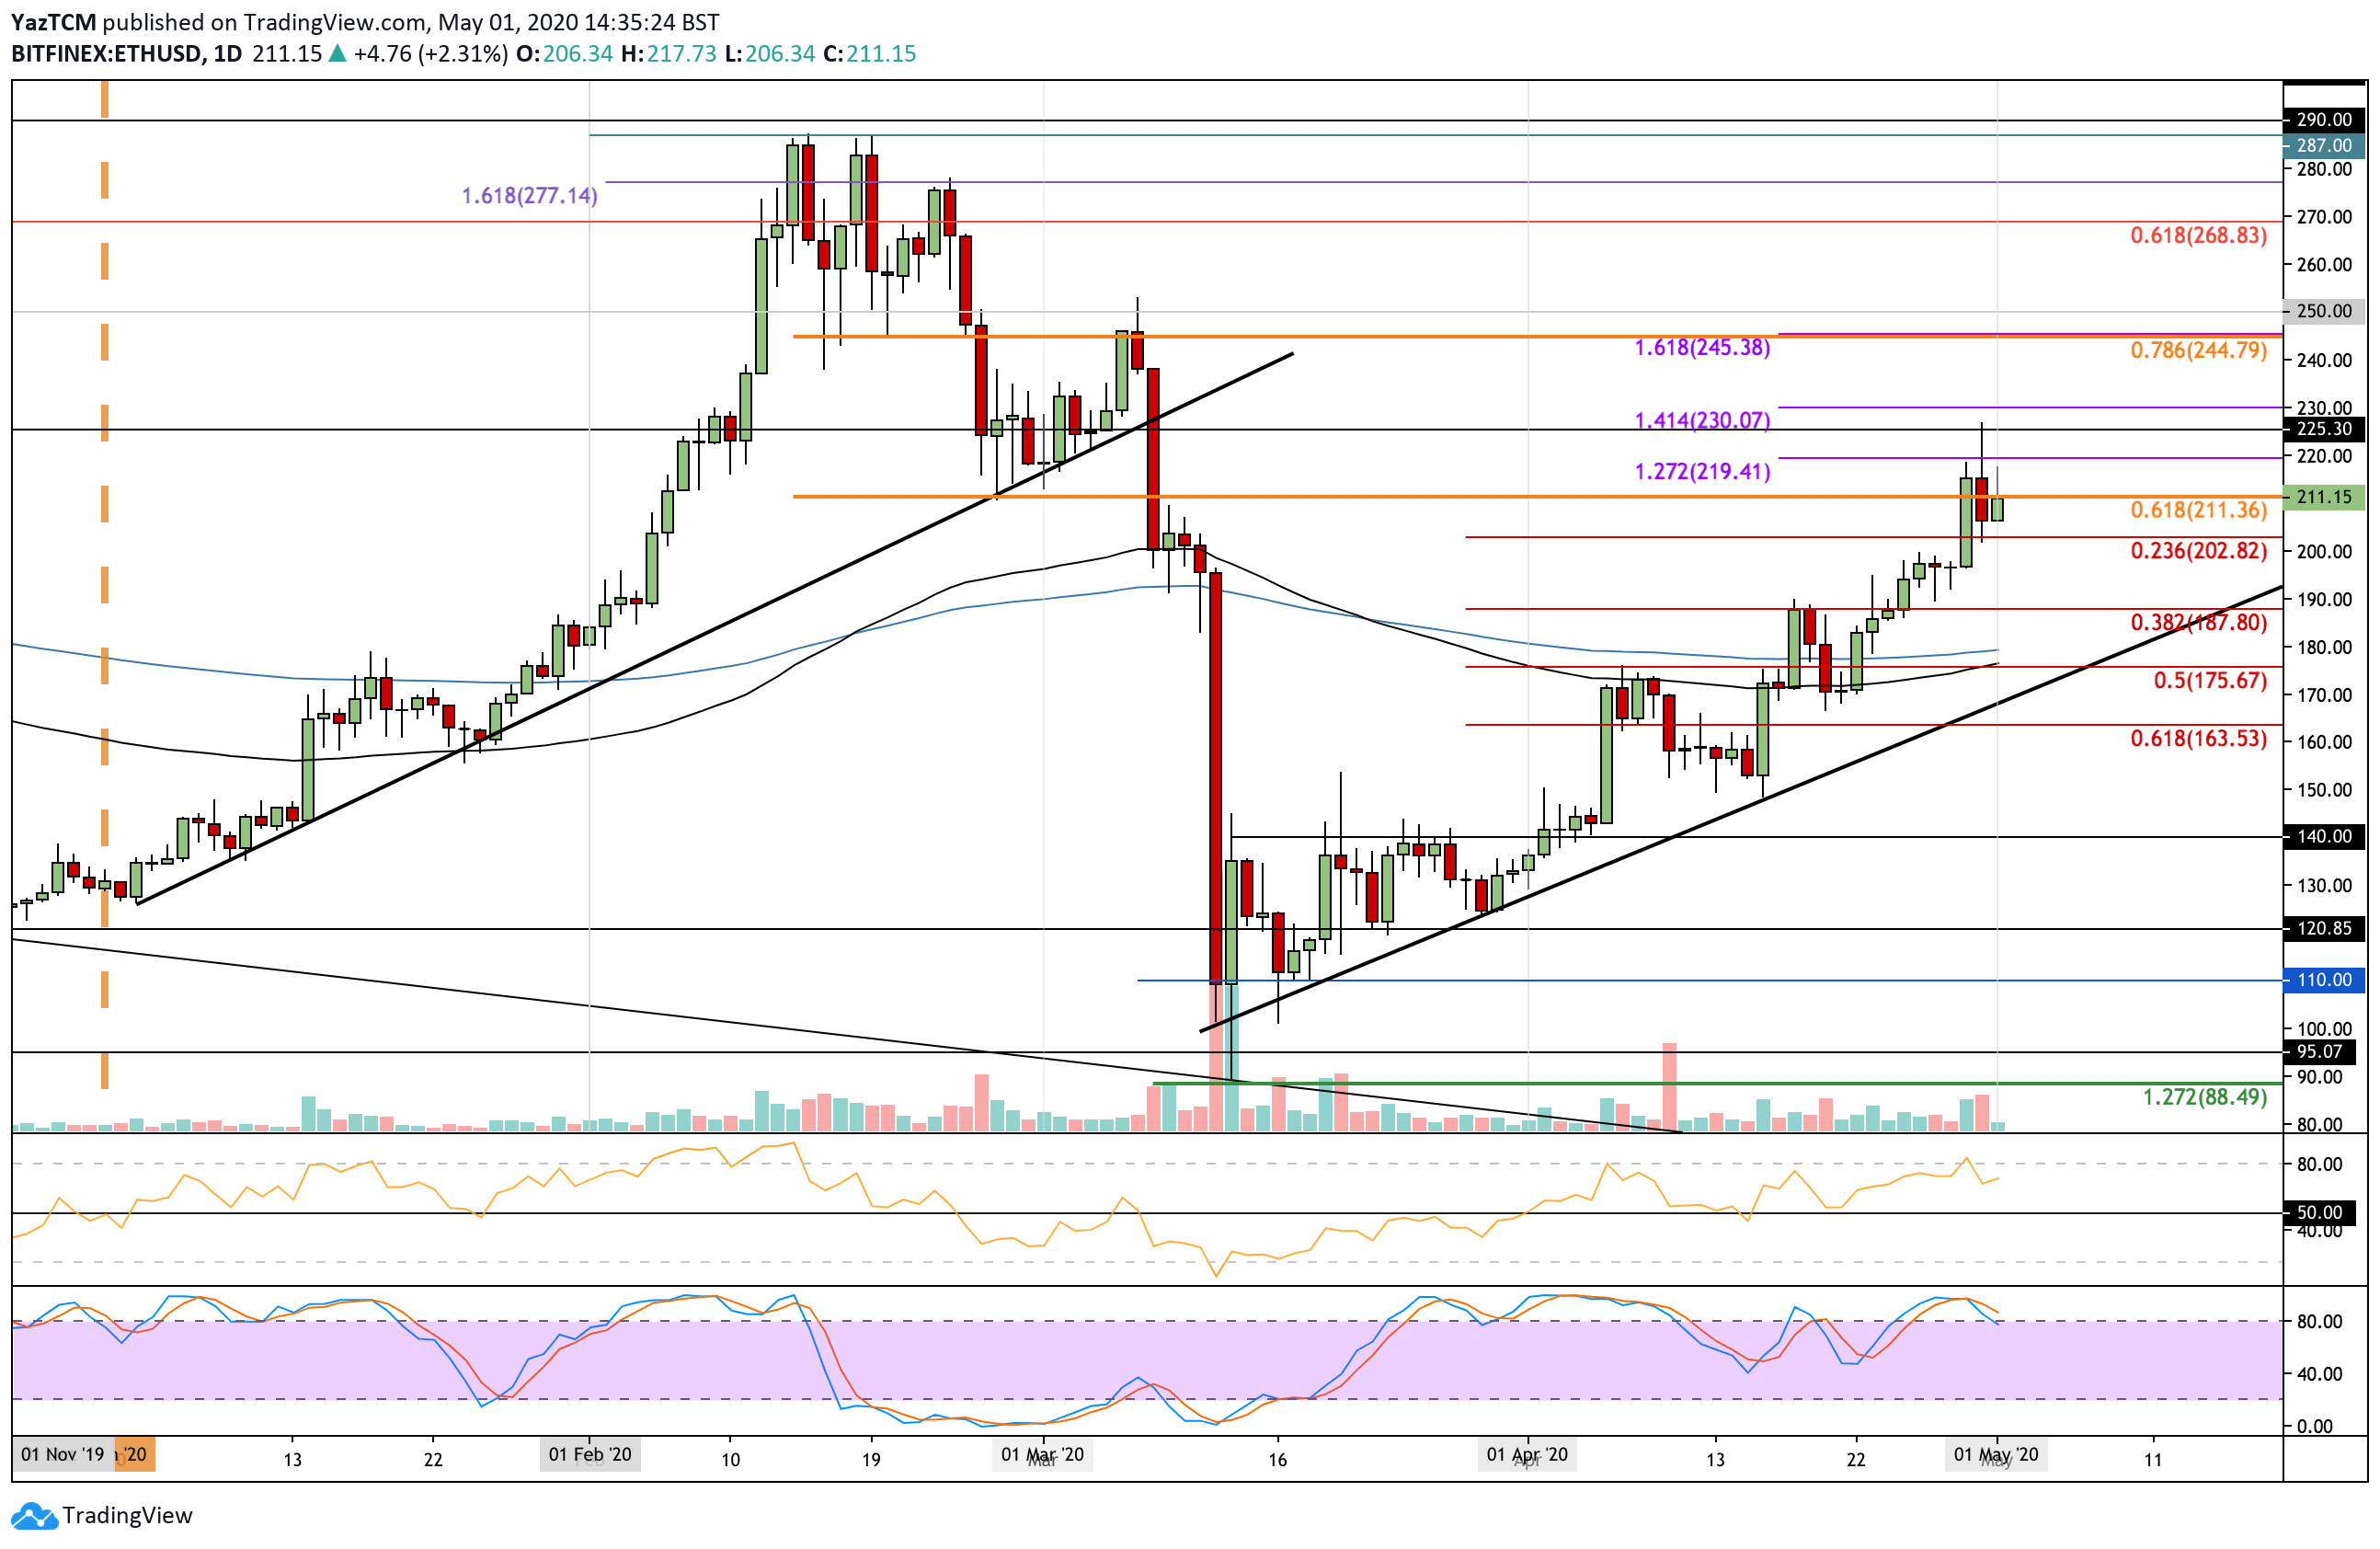 """ethusd_may1 """"width ="""" 2588 """"top ="""" 1684 """"srcset ="""" https://cryptopotato.com/wp-content/uploads/2020/05/ethusd_may1.png 2588w, https://cryptopotato.com/wp-content/ unggah / 2020/05 / ethusd_may1-300x195.png 300w, https://cryptopotato.com/wp-content/uploads/2020/05/ethusd_may1-1024x666.png 1024w, https://cryptopotato.com/wp-content/ unggah / 2020/05 / ethusd_may1-768x500.png 768w, https://cryptopotato.com/wp-content/uploads/2020/05/ethusd_may1-1536x999.png 1536w, https://cryptopotato.com/wp-content/ unggah / 2020/05 / ethusd_may1-2048x1333.png 2048w, https://cryptopotato.com/wp-content/uploads/2020/05/ethusd_may1-50x33.png 50w """"data-lazy-size ="""" (maks-lebar: 2588px) 100vw, 2588px """"src ="""" https://cryptopotato.com/wp-content/uploads/2020/05/ethusd_may1.png """"/><noscript><img class="""